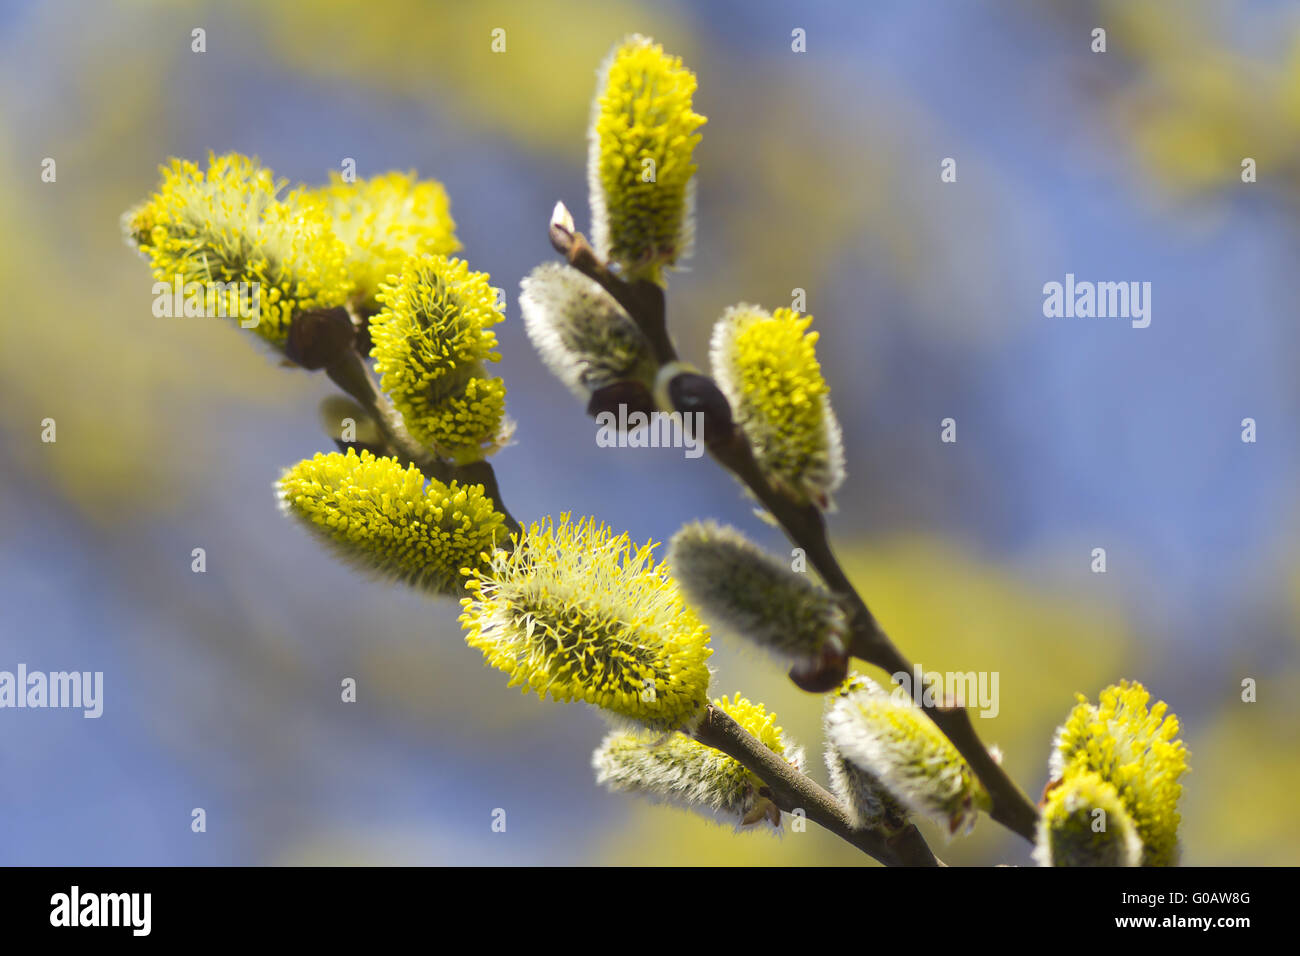 Blossoming branches of a willow. - Stock Image